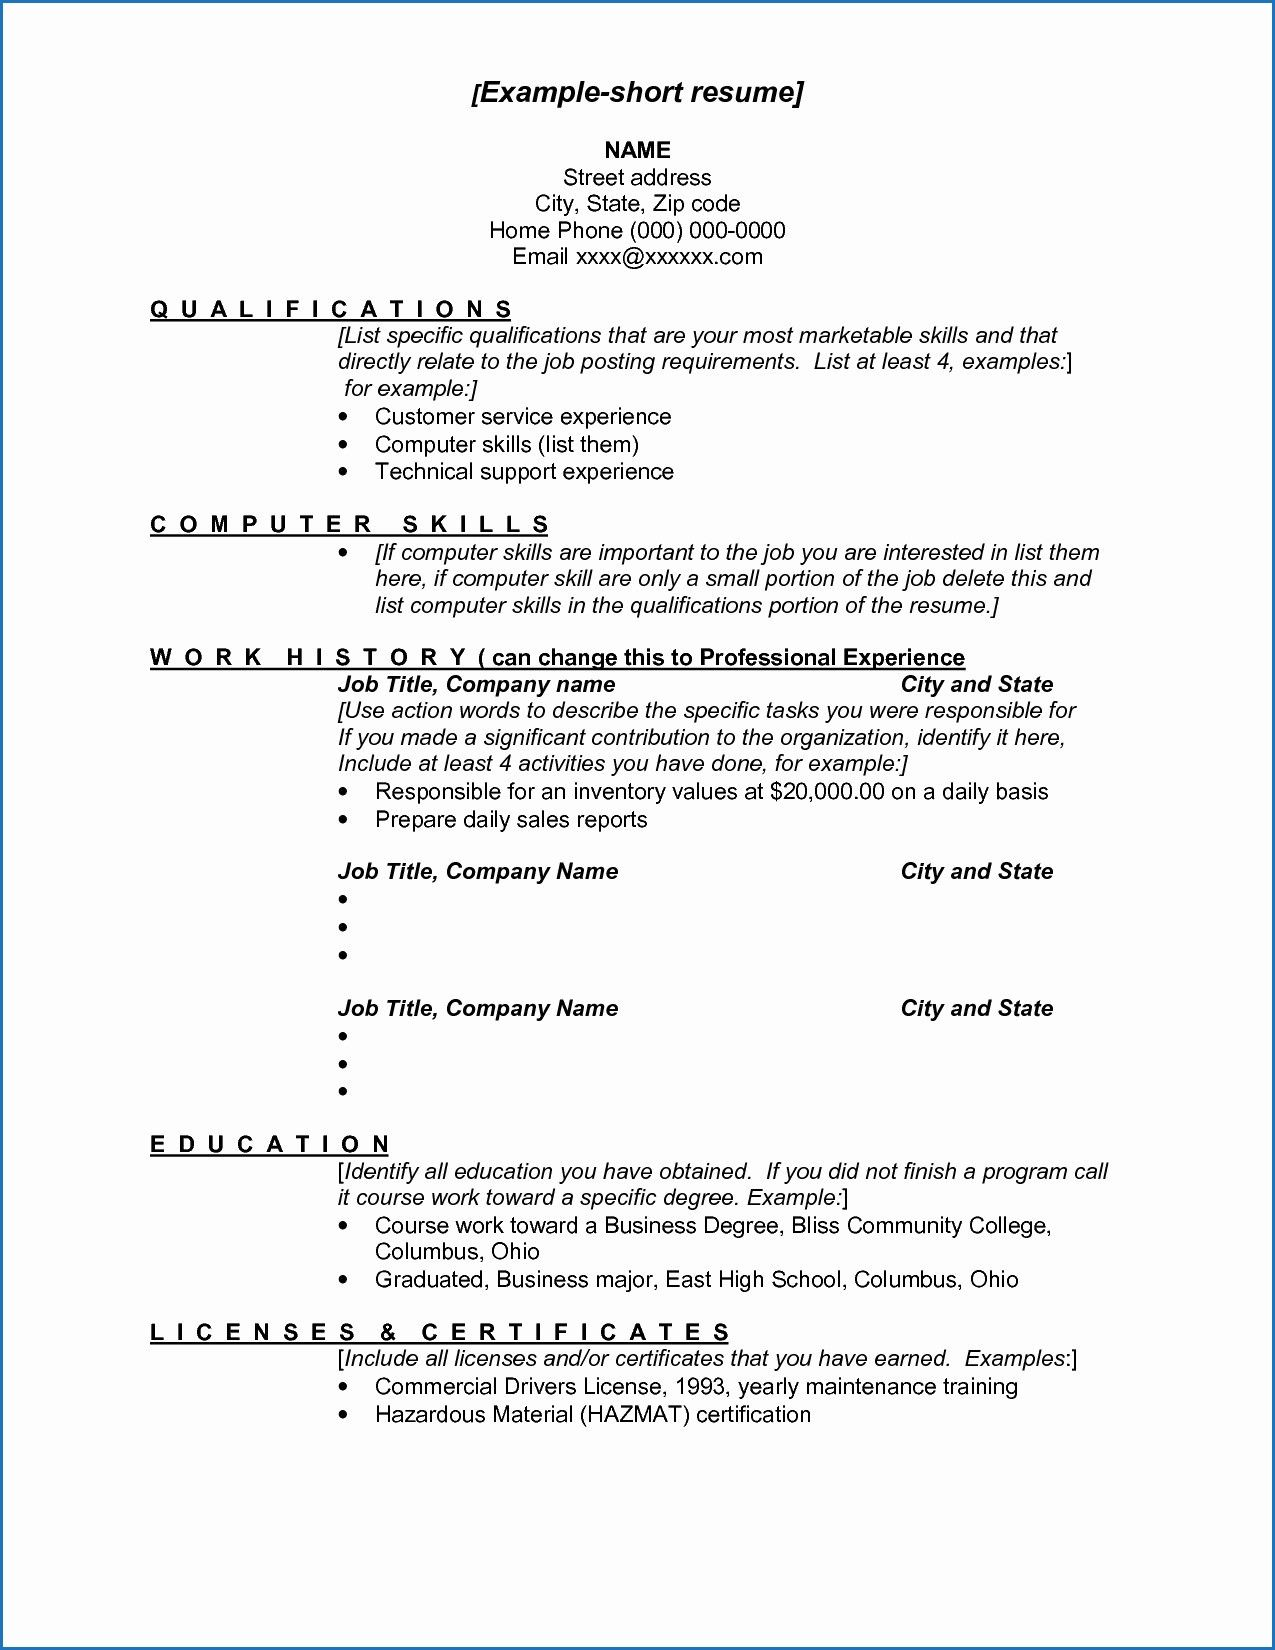 9 Resume Title Examples For Sales Check More At Https Www Ortelle Org Resume Title Examples For Sales